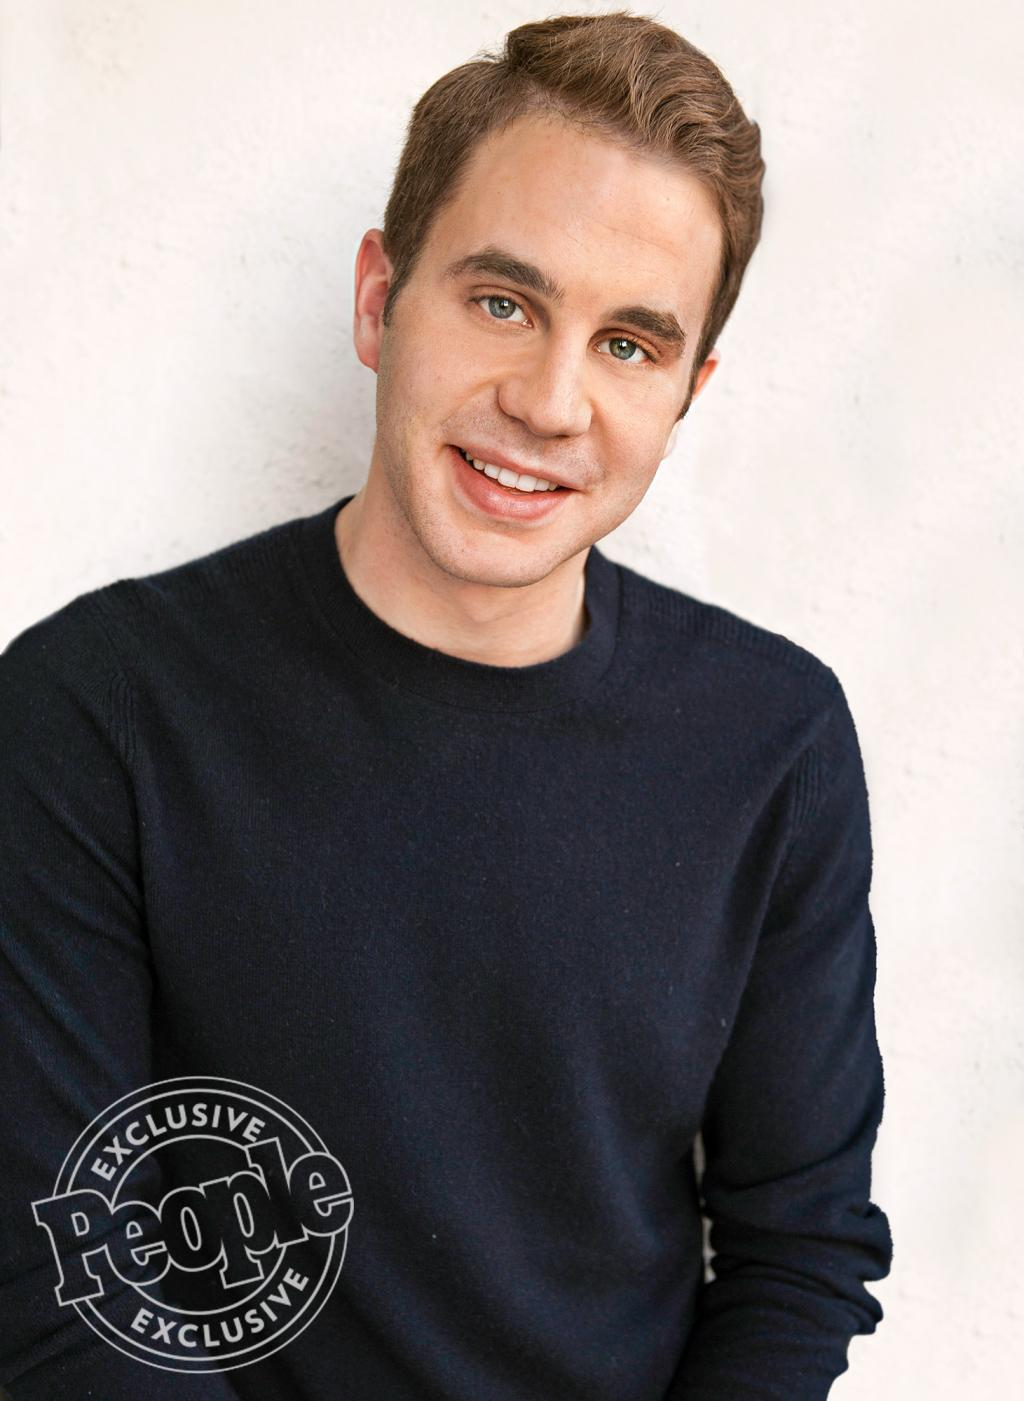 Dear Evan Hansen Star Ben Platt on The Wizard of Oz, Harry Potter and His Other Secret Obsessions